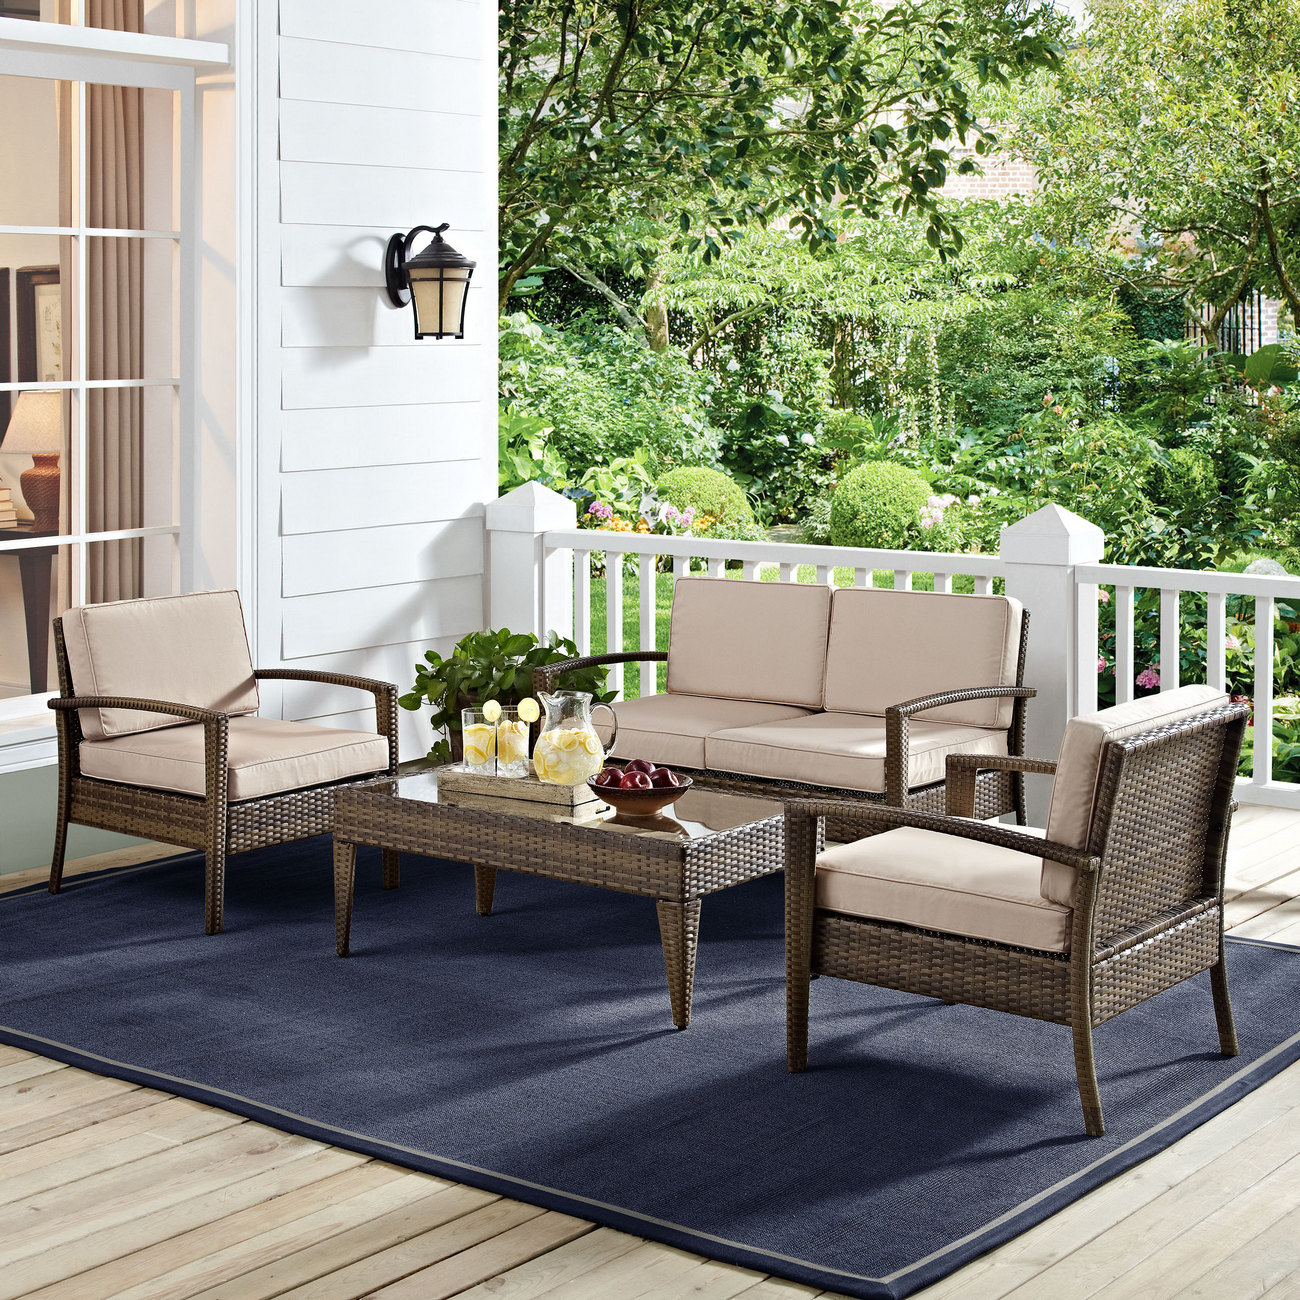 Crosley Brands Conversation Set Outdoor Wicker